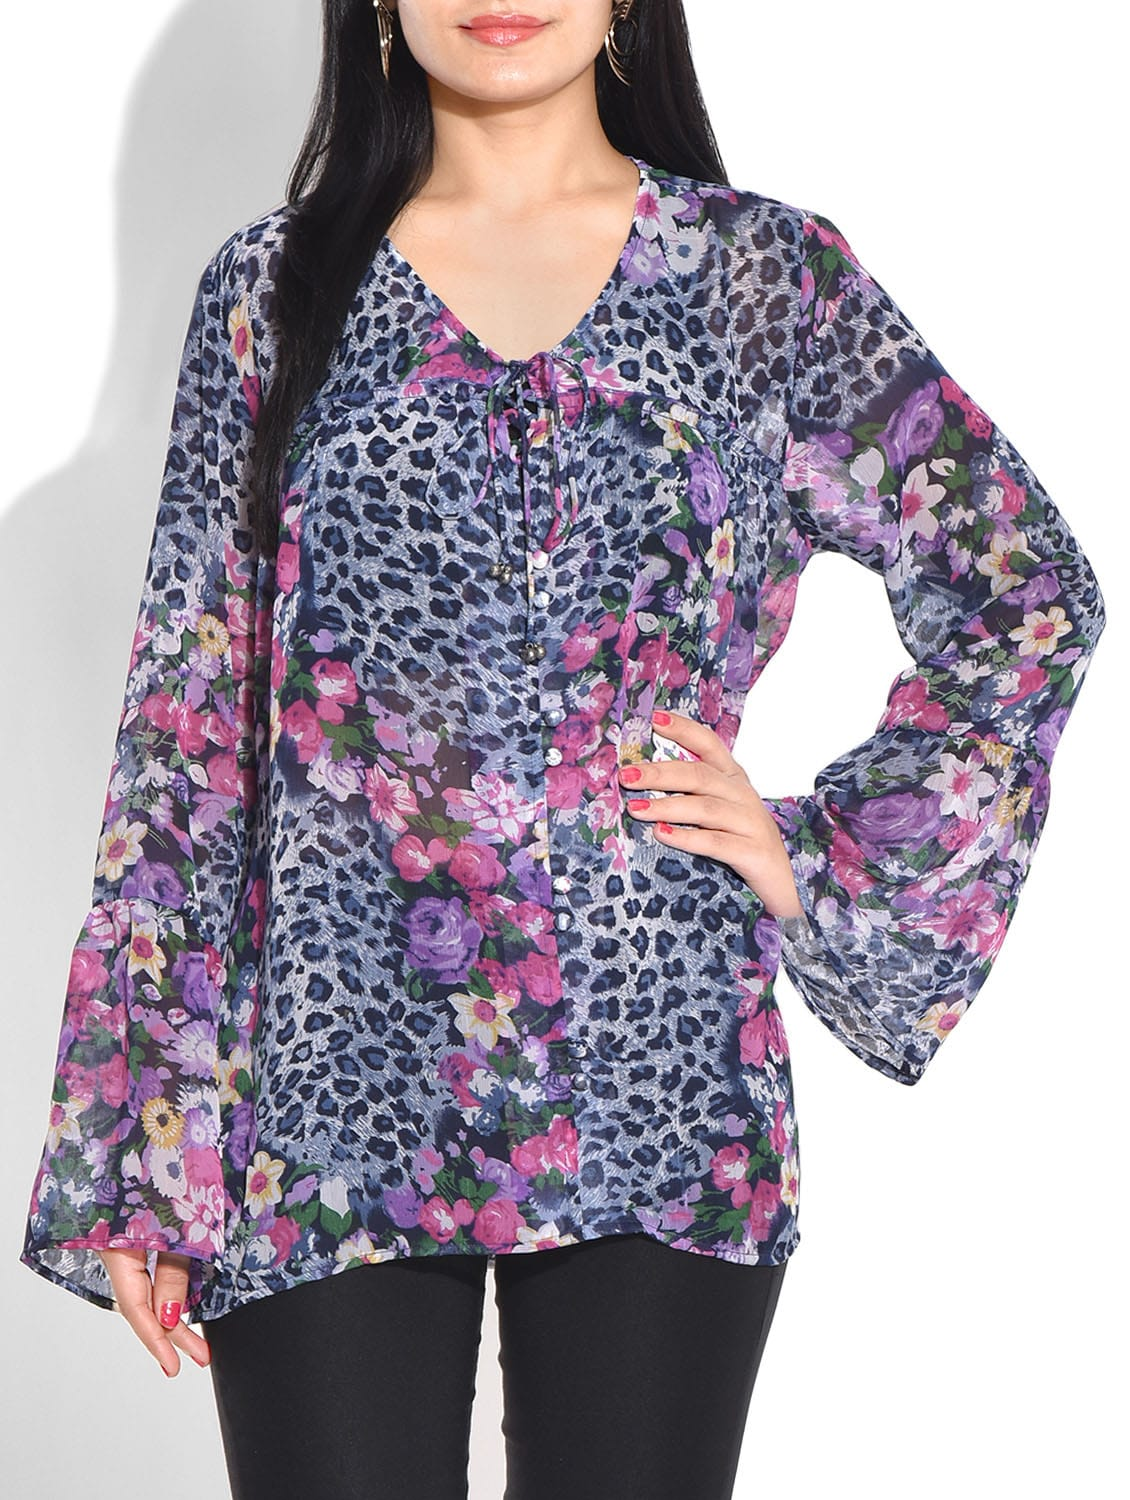 2132f6c41d63 Buy Blue Animal Print Poly Georgette Top for Women from Feyona for ₹223 at  72% off